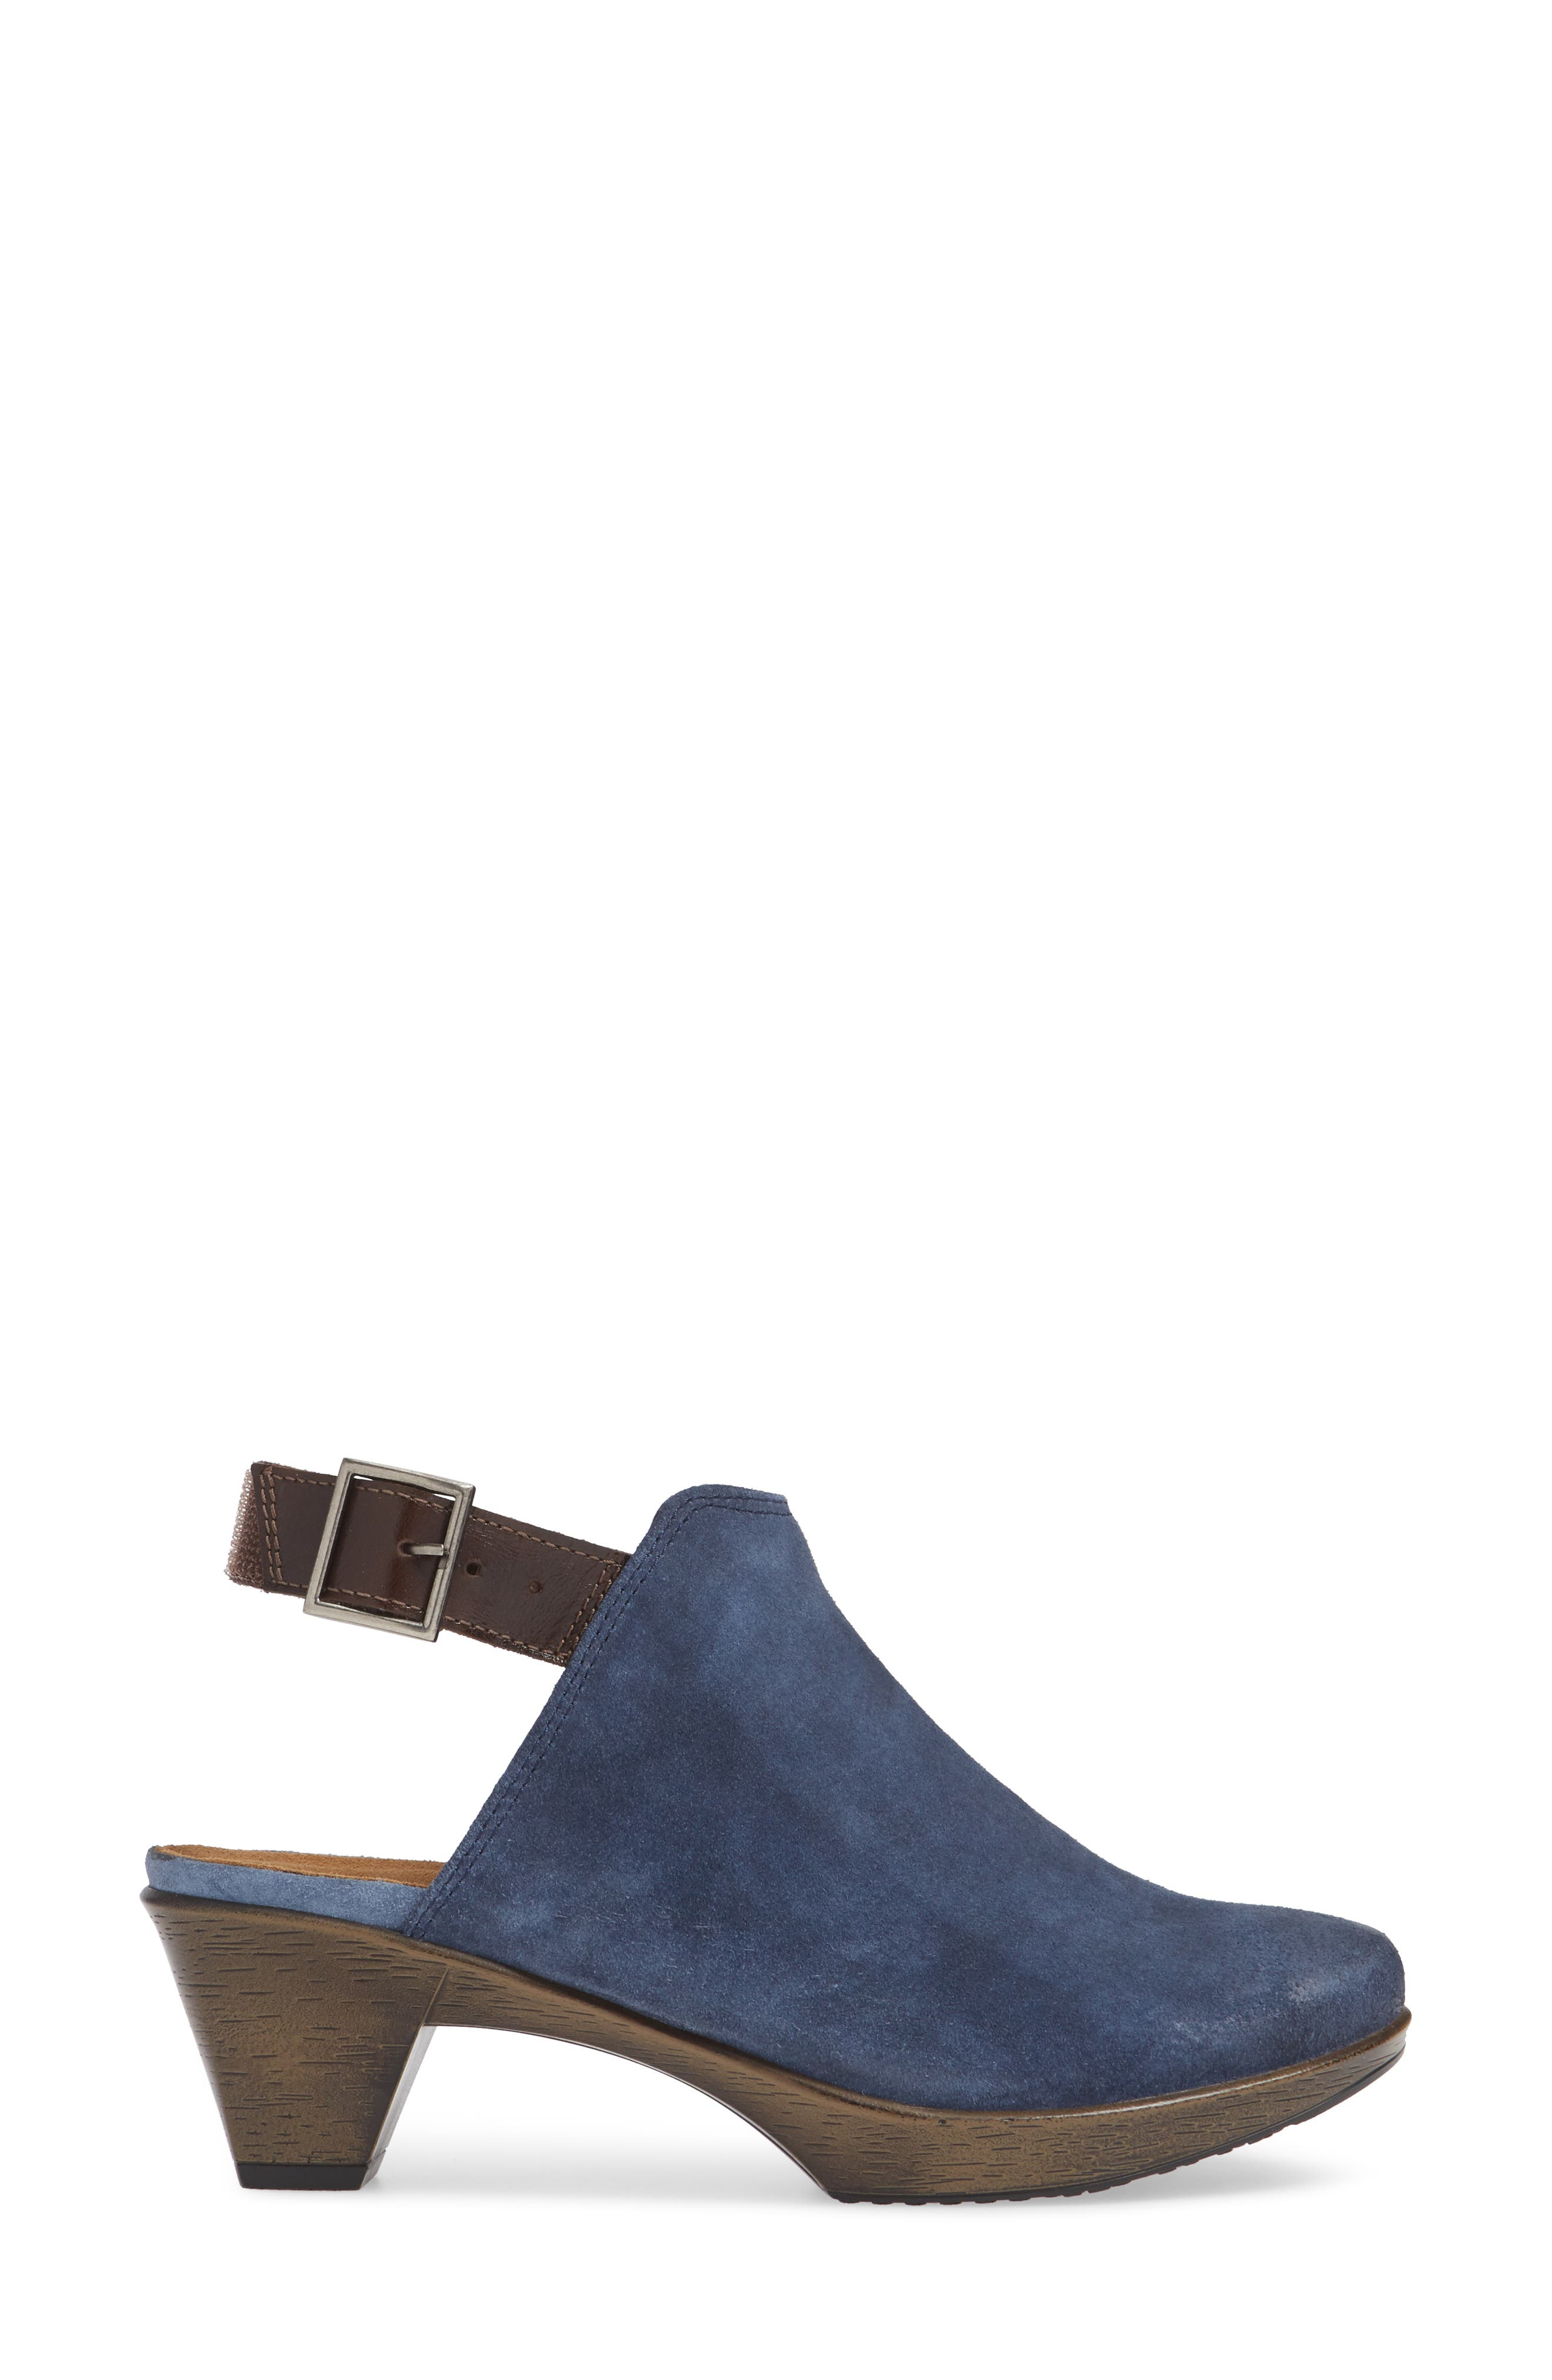 Upgrade Bootie,                             Alternate thumbnail 3, color,                             BLUE/ WALNUT SUEDE/ LEATHER